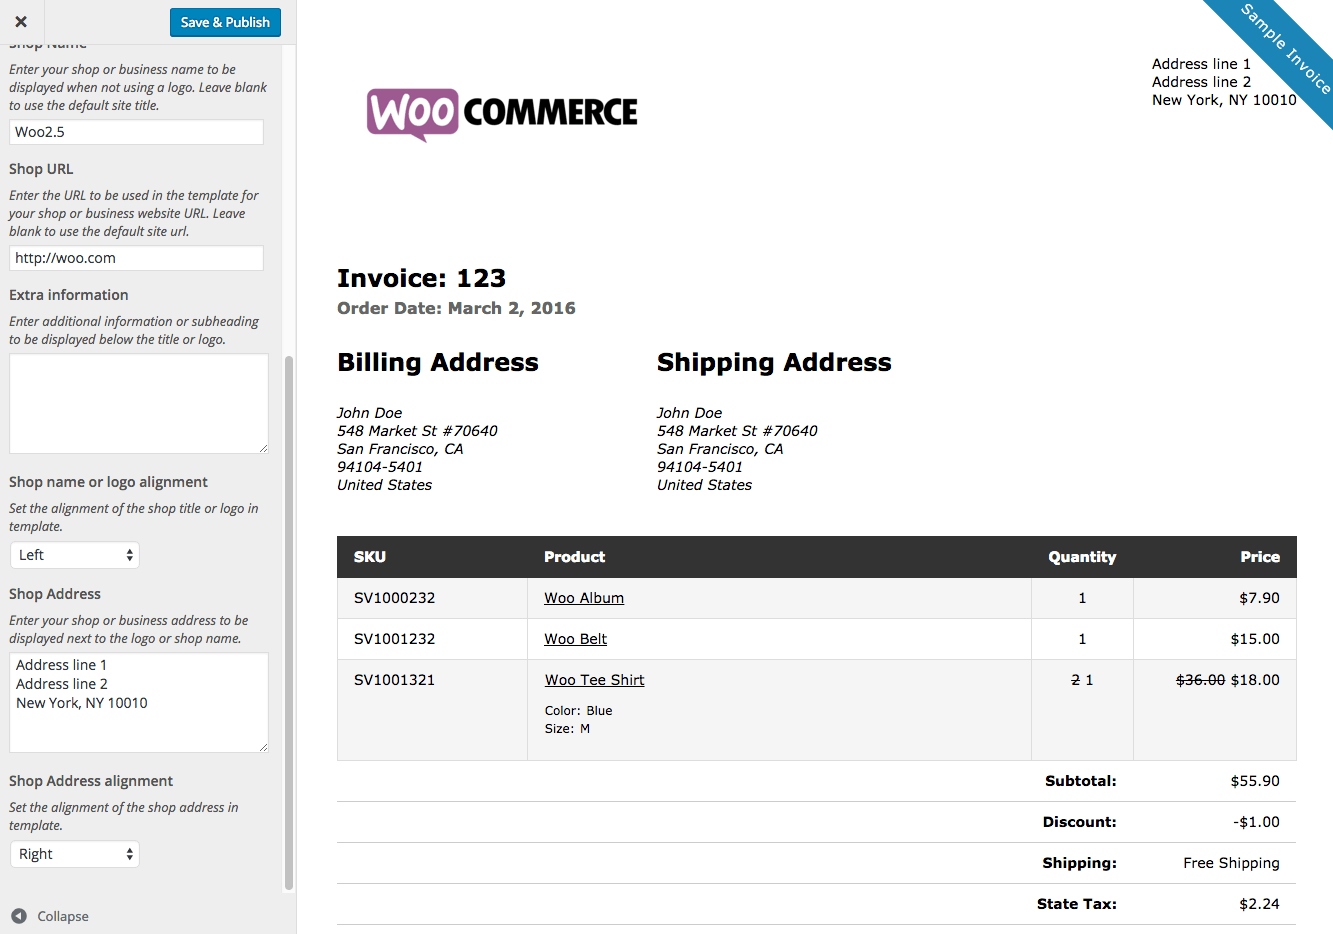 Sandiegolocksmithsus  Splendid Woocommerce Print Invoices Amp Packing Lists  Woocommerce Docs With Gorgeous Woocommerce Print Invoices  Packing Lists Customizer With Cool Kanye West Keep The Receipt Also Making Fake Receipts In Addition Printable Receipts Templates And Free Printable Receipts For Services As Well As Receipt Printer Usb Additionally Receipt Ledger From Docswoocommercecom With Sandiegolocksmithsus  Gorgeous Woocommerce Print Invoices Amp Packing Lists  Woocommerce Docs With Cool Woocommerce Print Invoices  Packing Lists Customizer And Splendid Kanye West Keep The Receipt Also Making Fake Receipts In Addition Printable Receipts Templates From Docswoocommercecom